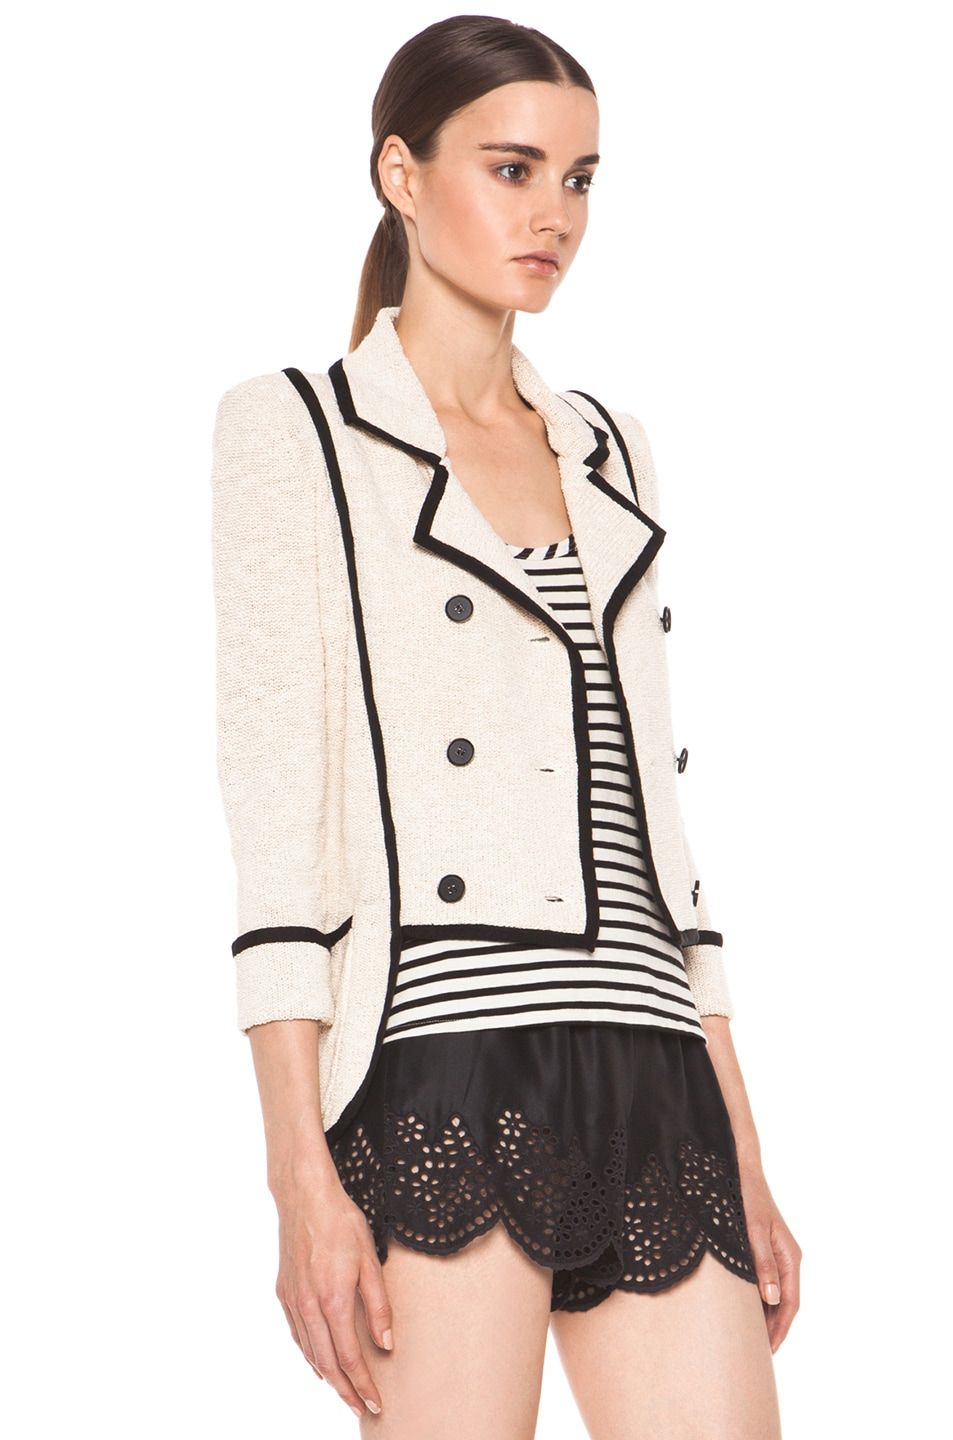 Image 4 of Skaist Taylor Boucle Jacket in Cream